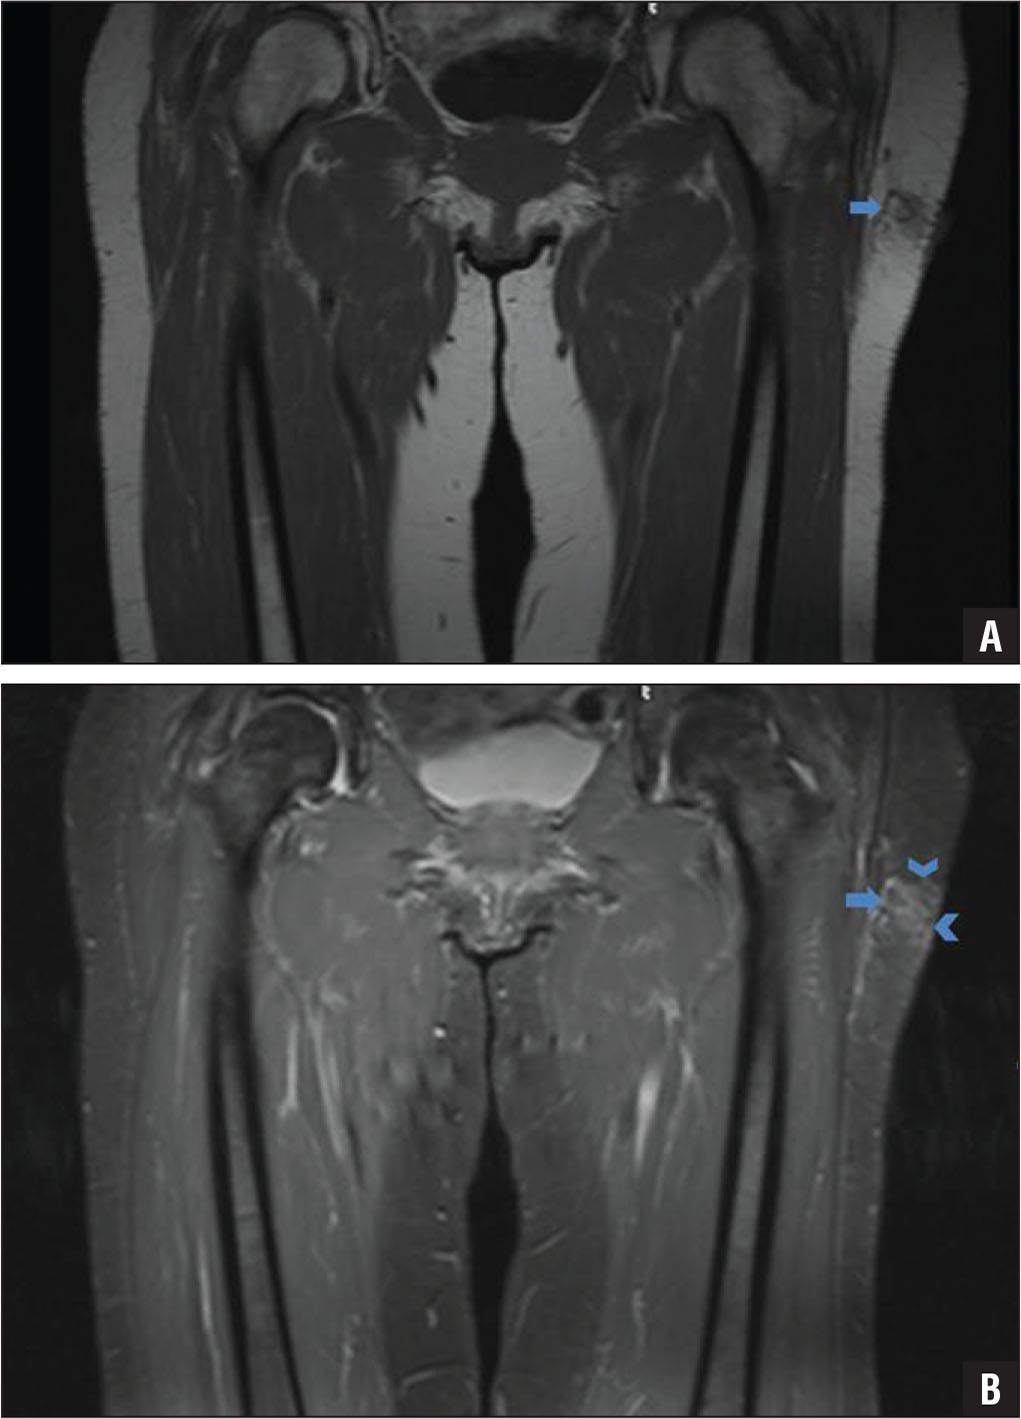 Magnetic resonance images of the pelvis obtained at initial presentation to evaluate a clinically palpable mass in the left thigh. Coronal T1-weighted image of the left thigh showing a small subcutaneous fatty mass (arrow) with ill-defined margins (A). Coronal T2-weighted fat-suppressed image showing homogeneous suppression of fat signal inside the lesion (arrow) with overlying subcutaneous edema (arrowheads) (B).